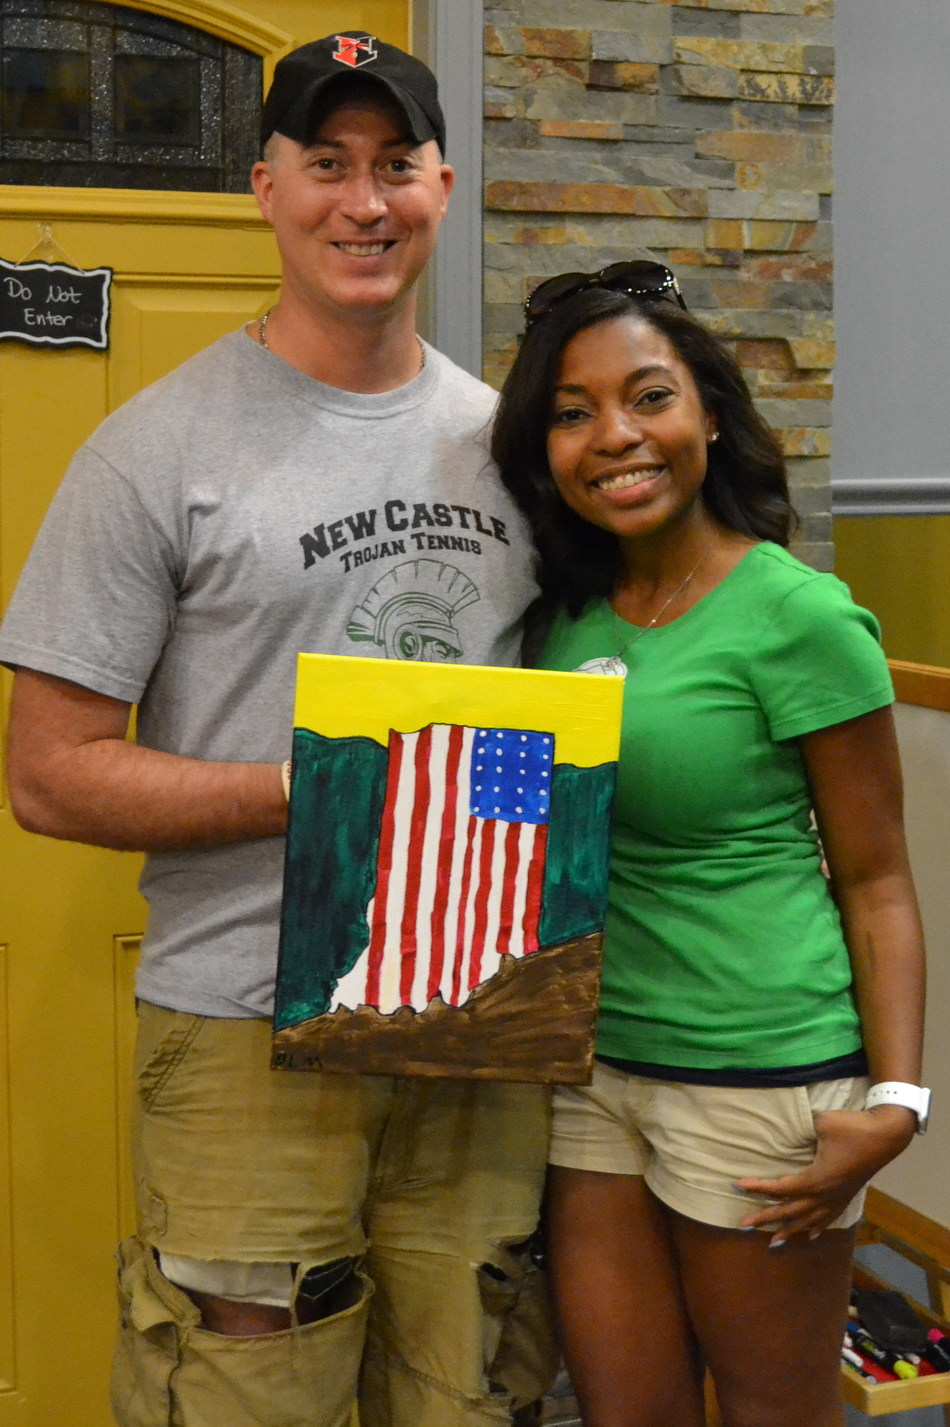 During the Paint with Your Mate Date Night with Wounded Warrior Project, participants spent the evening learning to paint unique masterpieces with step-by-step guidance from an experienced art instructor.